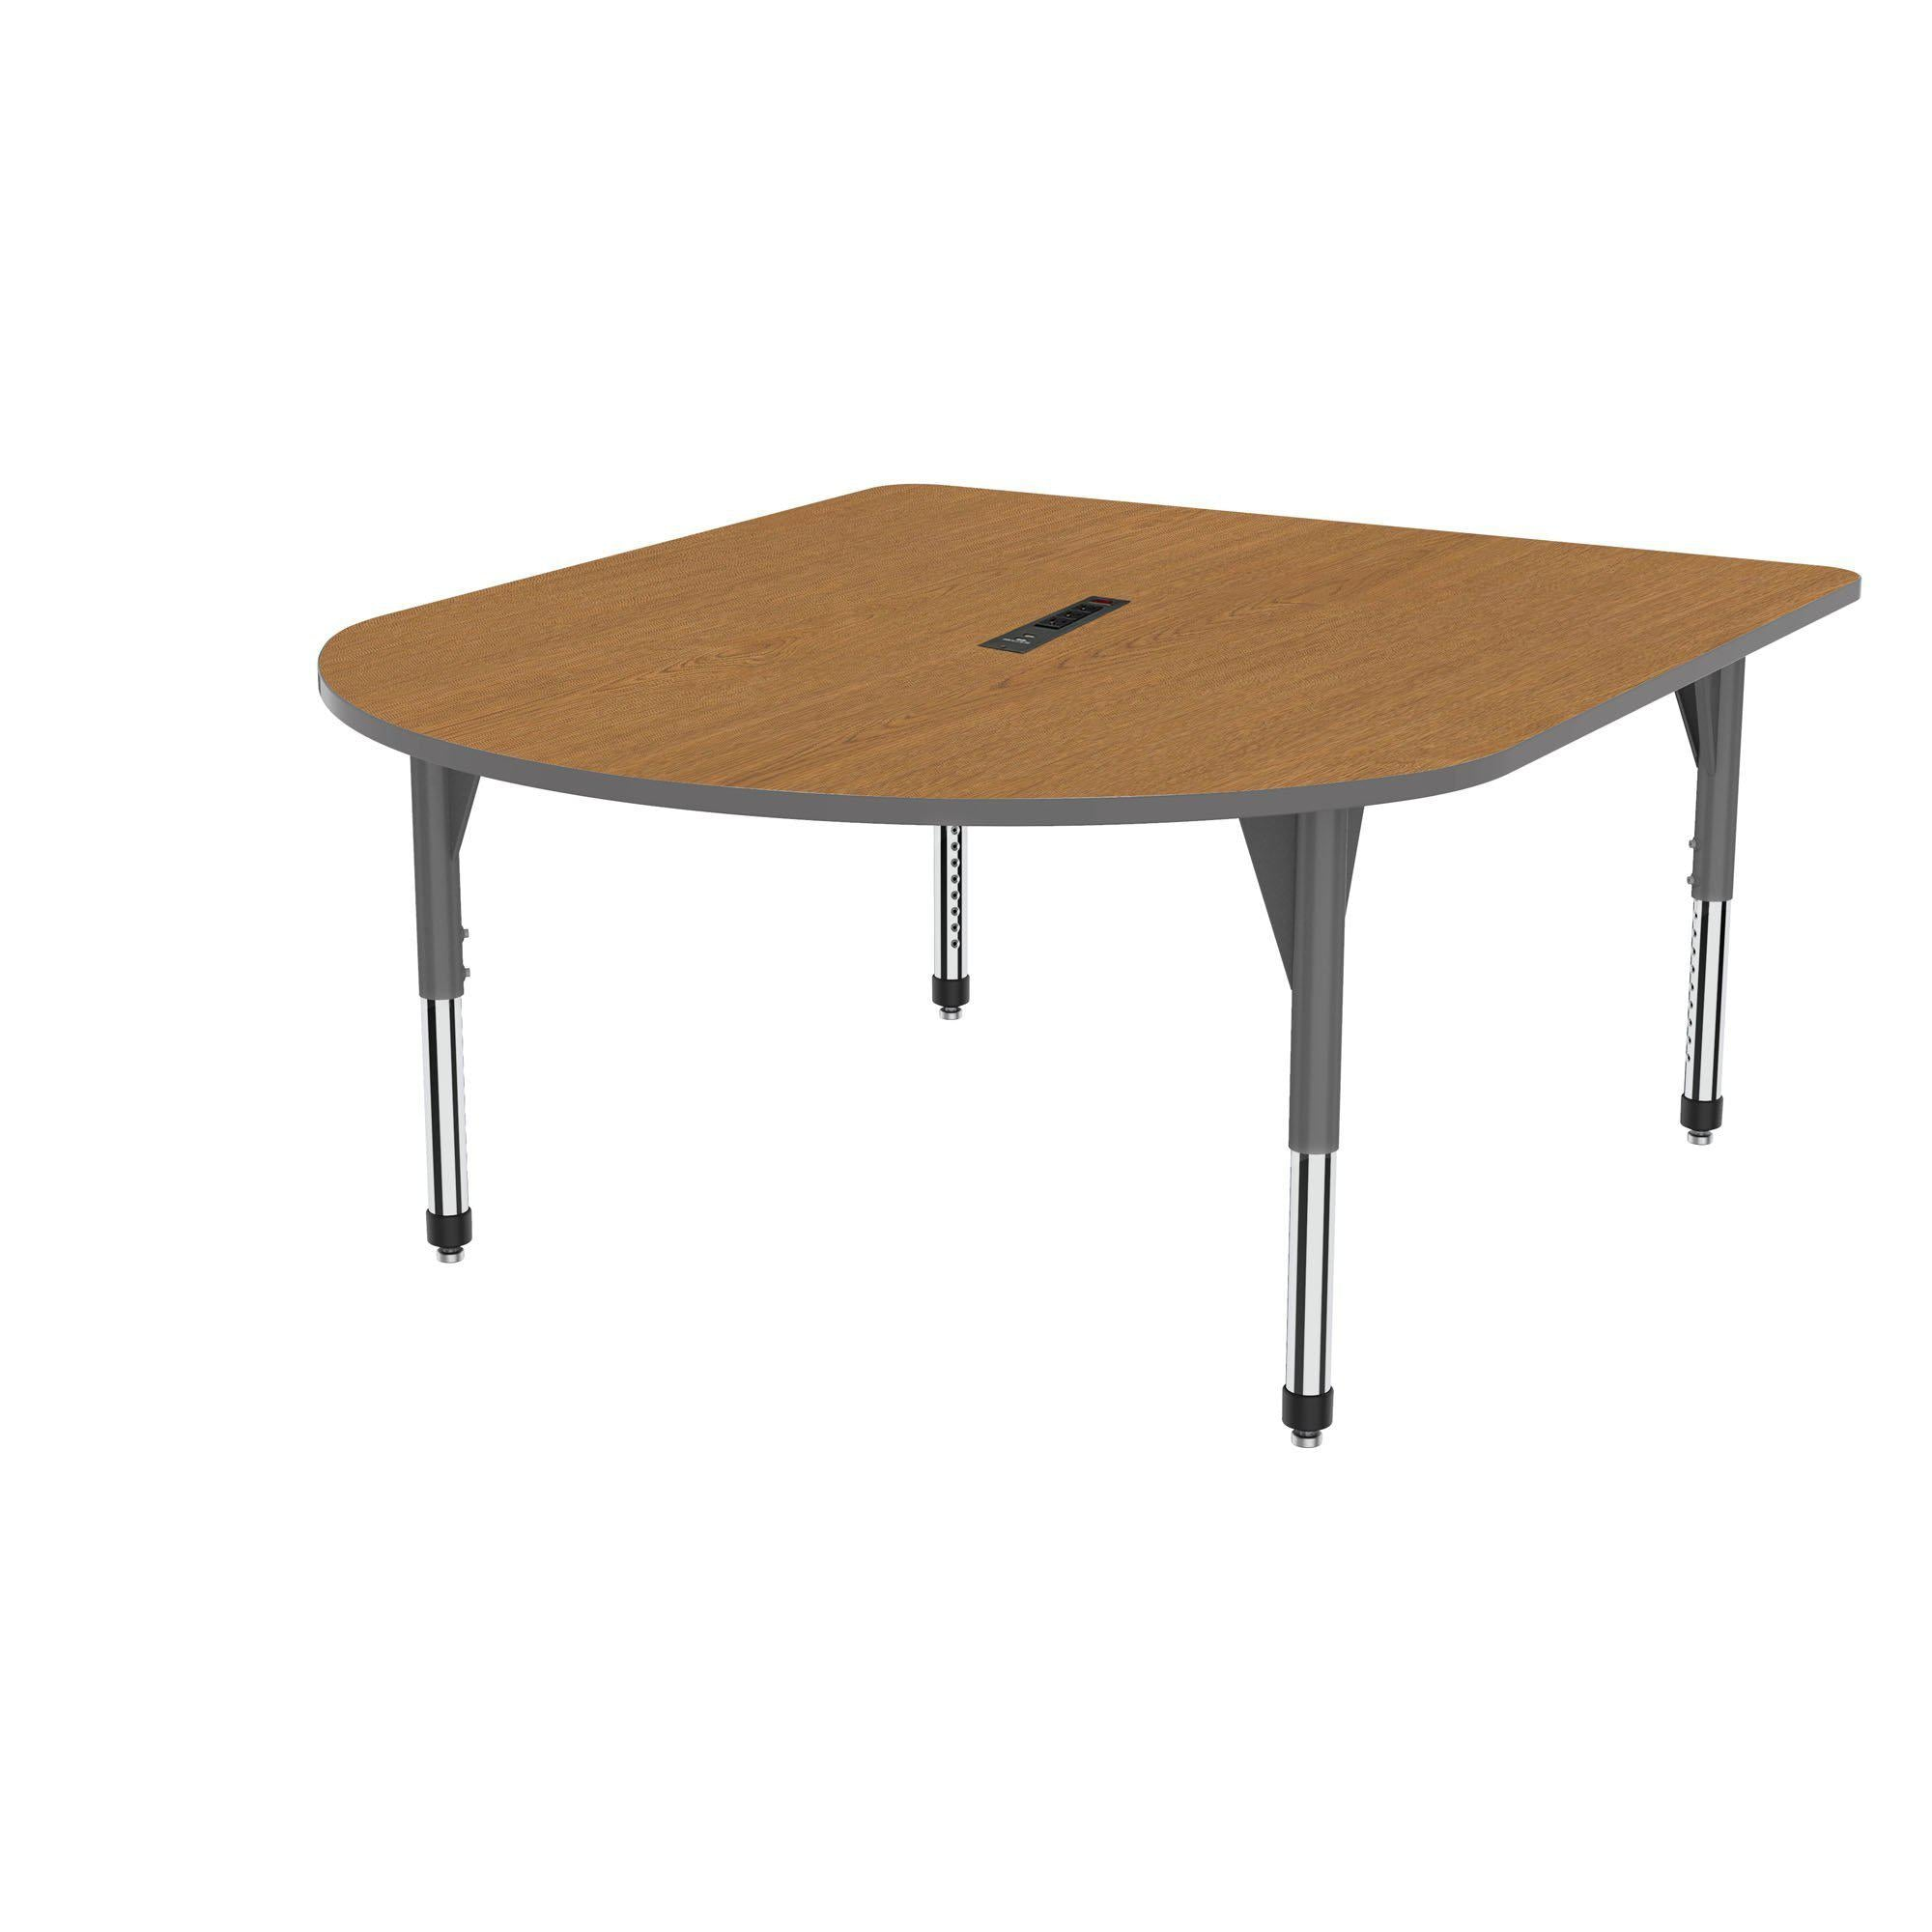 "Premier Series Multimedia Tables with Power Module, 60"" x 72""-Tables-Sitting (21"" - 31"")-Solar Oak/Gray-Grey"